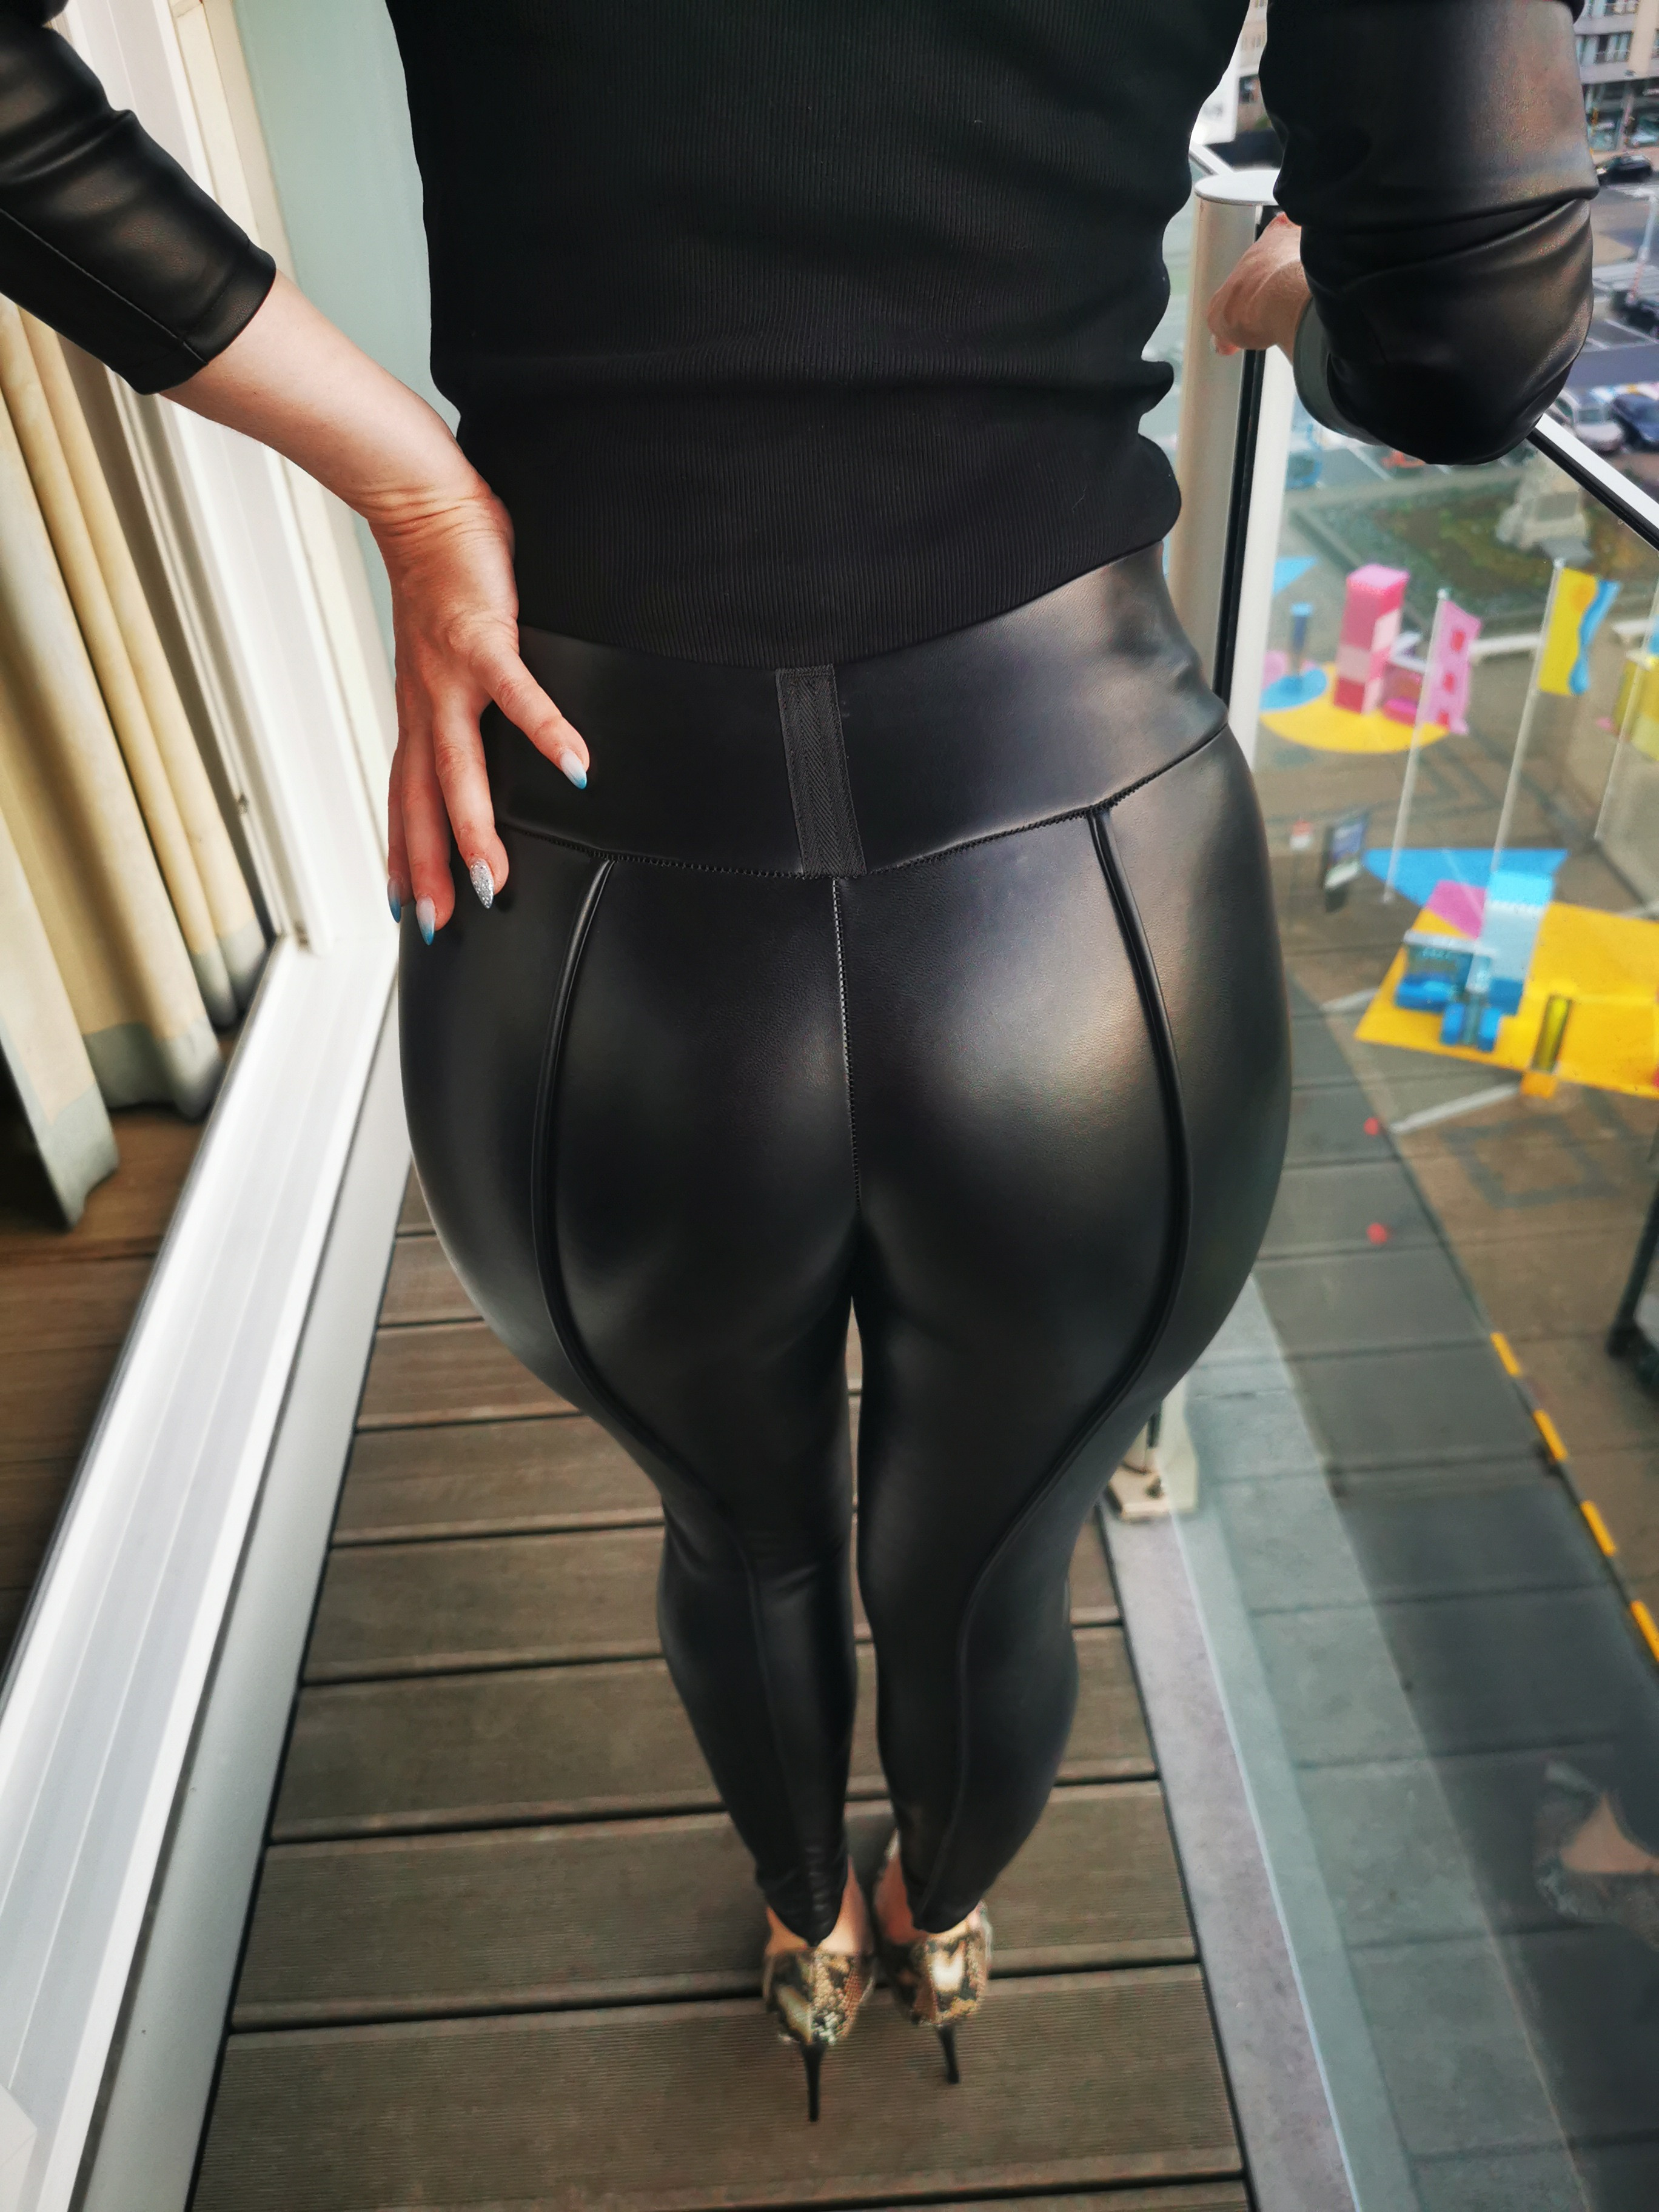 I love a nice looking ass in leather psnts. This is...